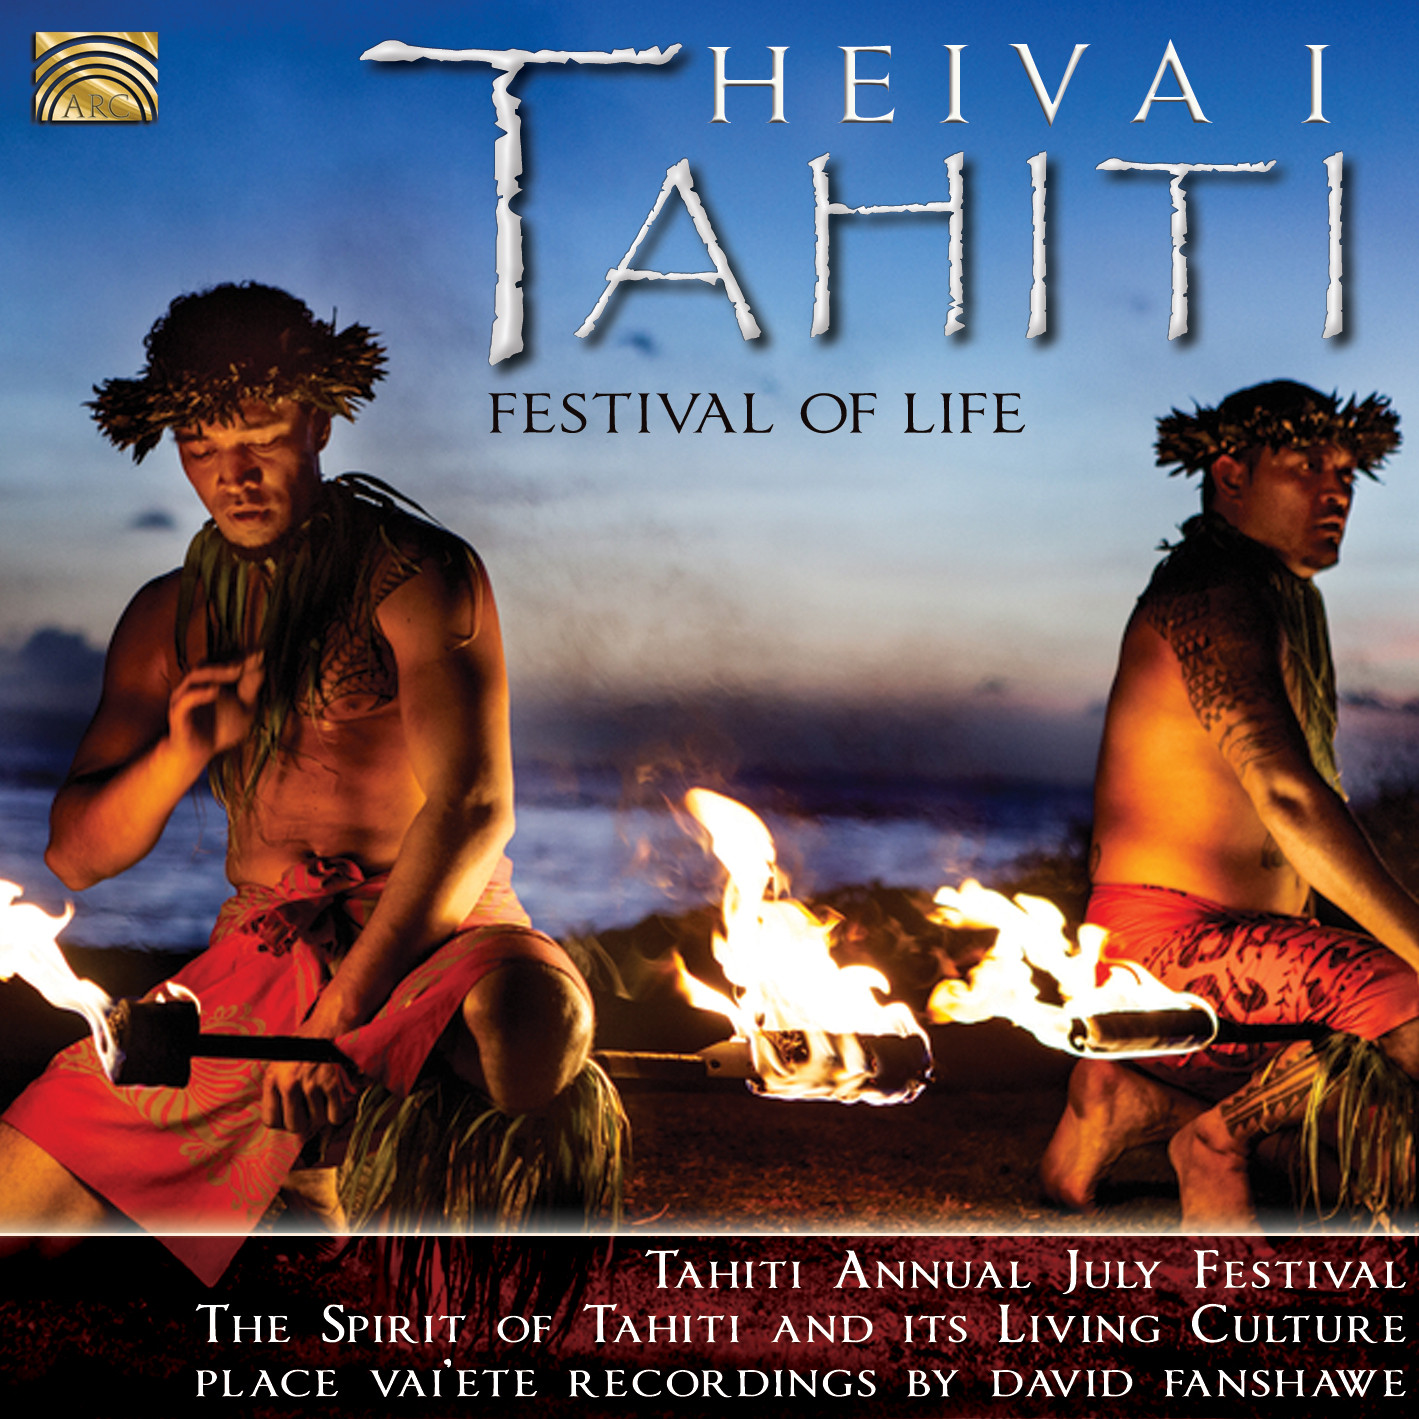 EUCD2503 Heiva i Tahiti - Festival of Life - recordings by David Fanshawe